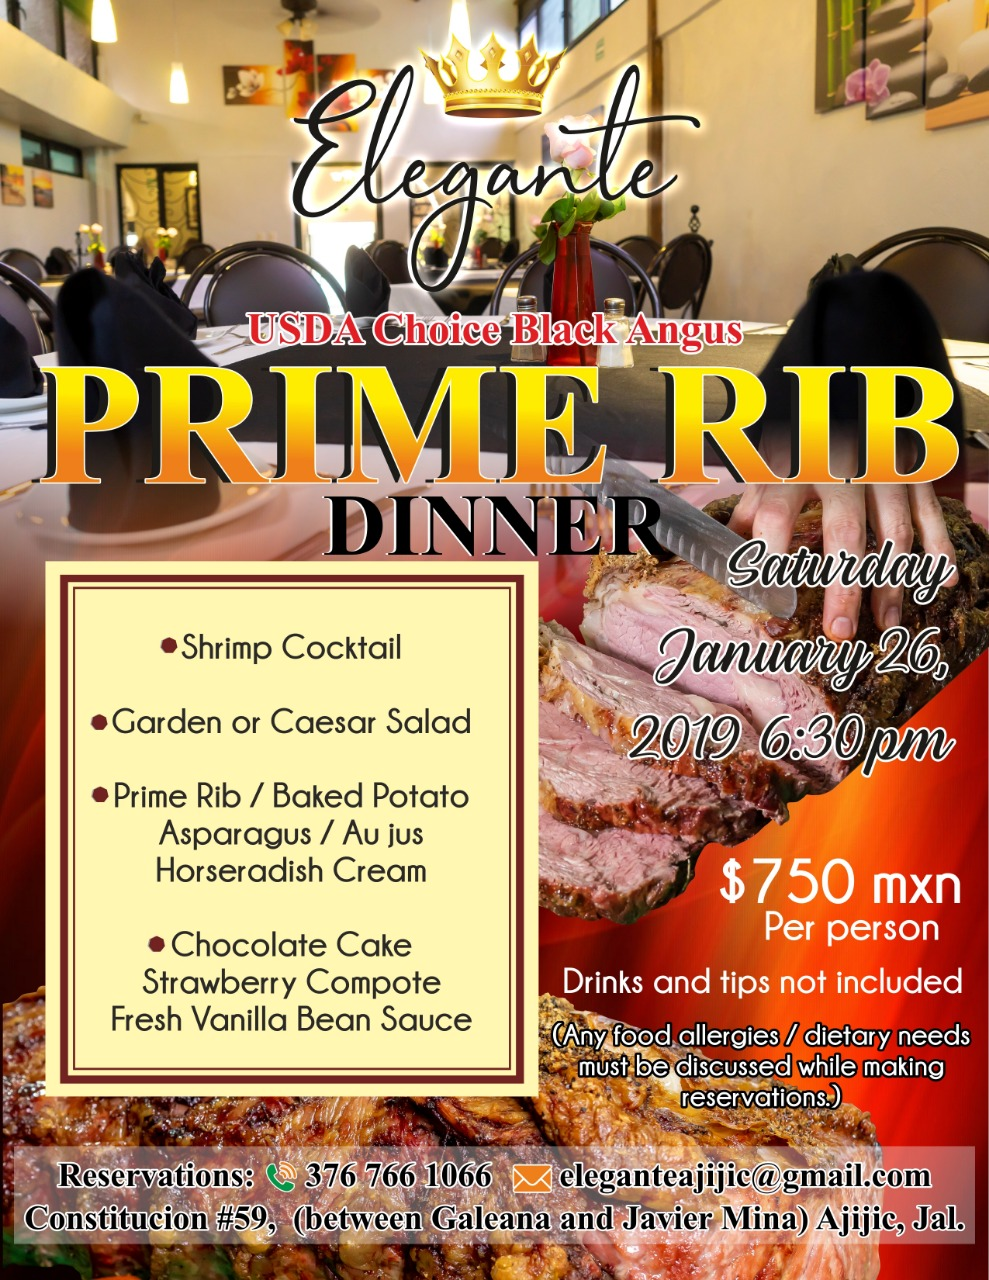 Elegante Prime Rib Dinner Saturday, January 26, 2019 at 6:30pm Prime_12